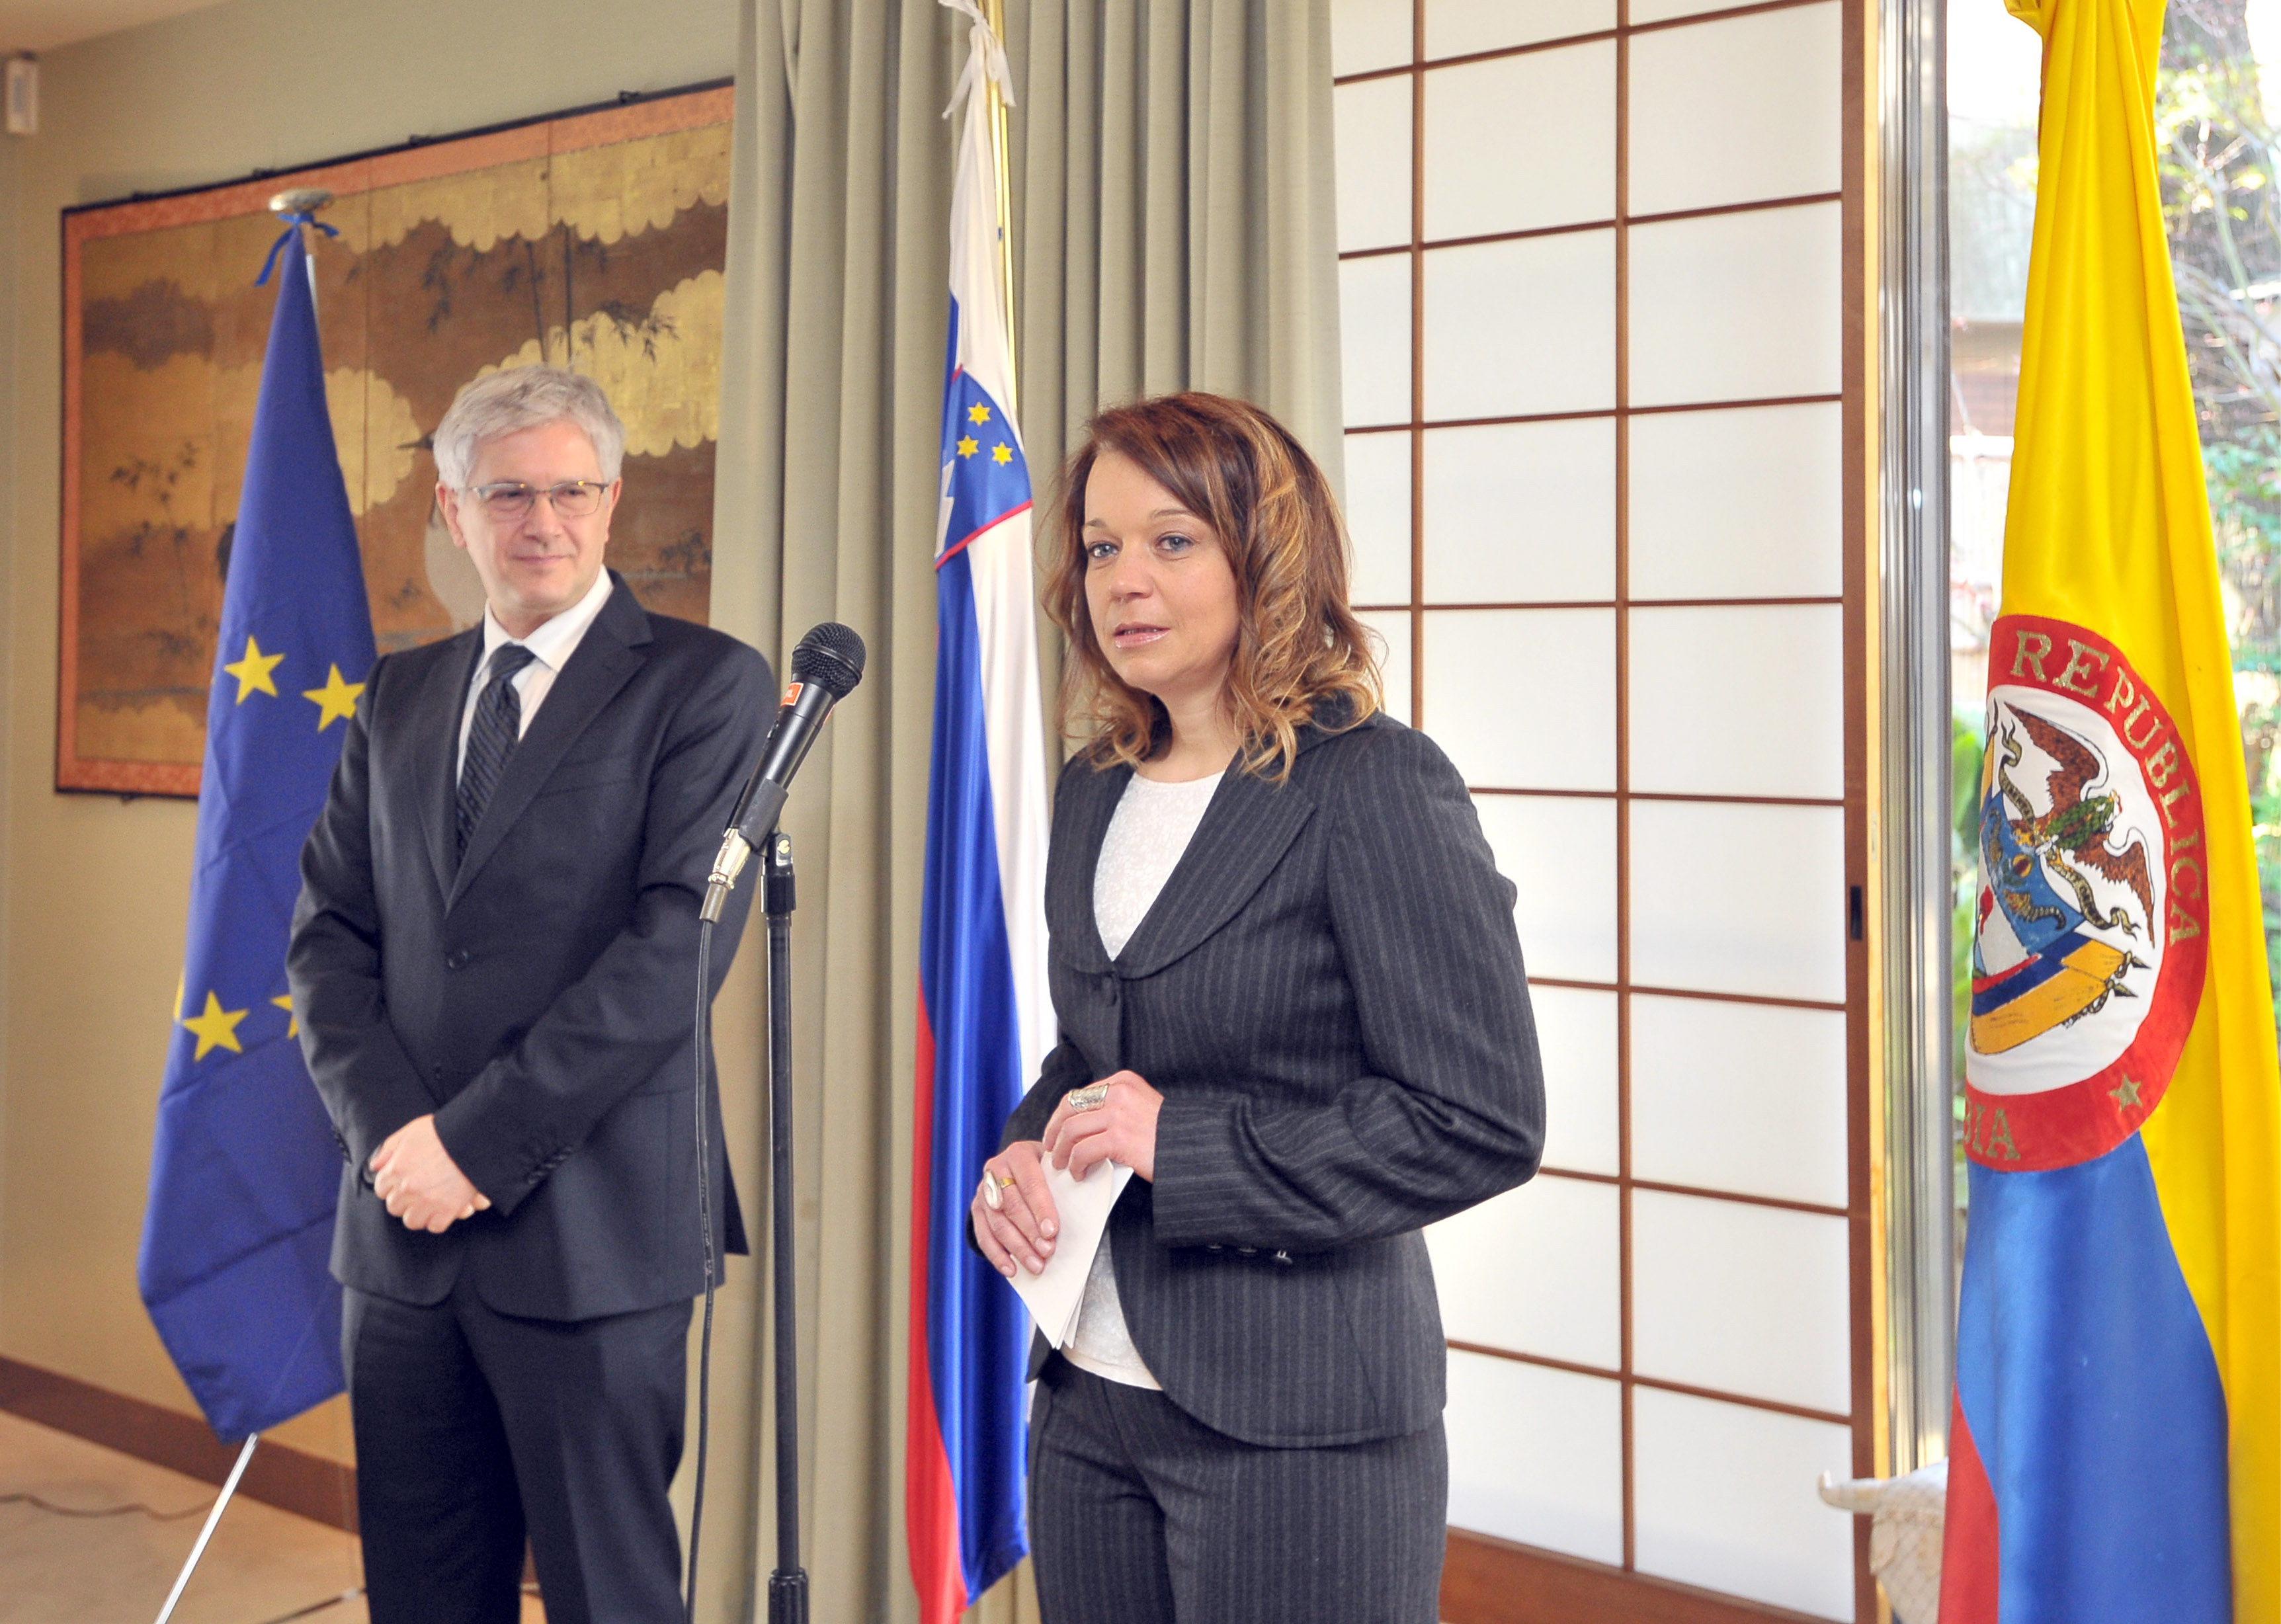 """Colombian Ambassador Gabriel Duque (left) and Slovenian Ambassador Simona Leskovar speak on the International Day of Mine Awareness and Assistance in Mine Action, explaining the """"Lend your leg'' campaign that encourages people worldwide through the symbolic gesture of rolling up a pant leg or a sleeve to raise awareness of the damage land mines still cause, while showing solidarity with all survivors of land mines and other explosive remnants of war. 